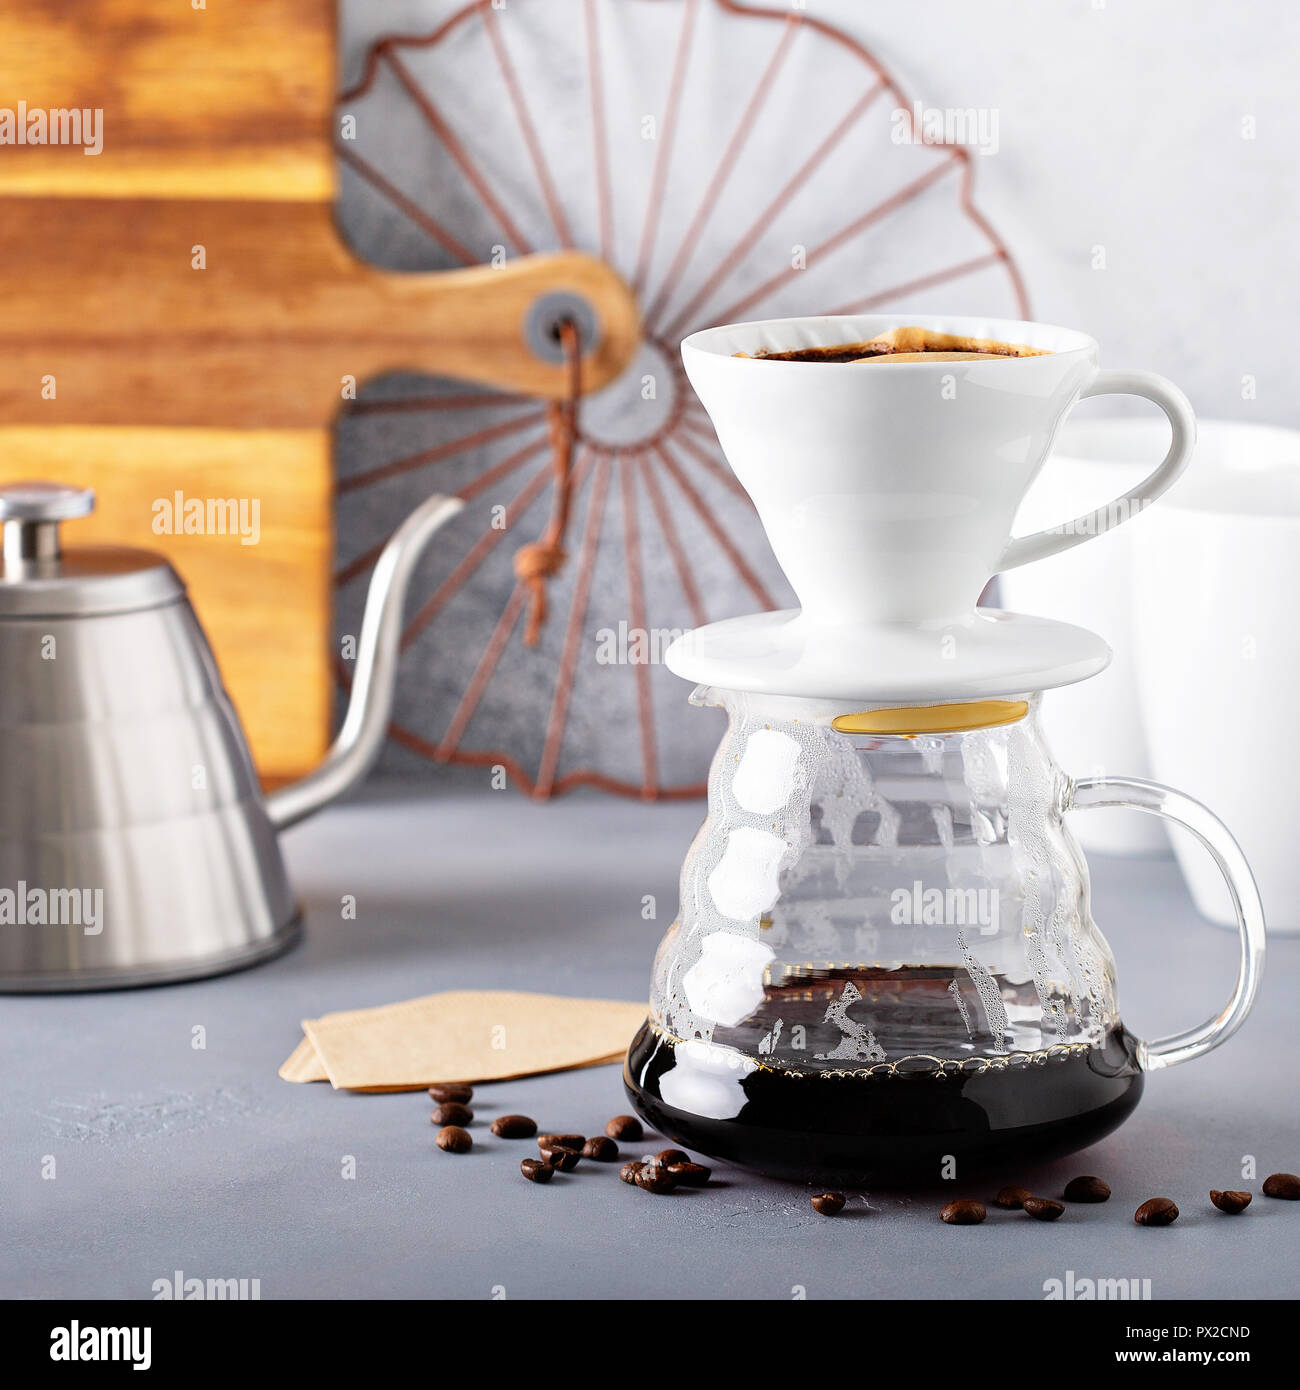 Pour over coffee being made with a kettle and glass carafe - Stock Image